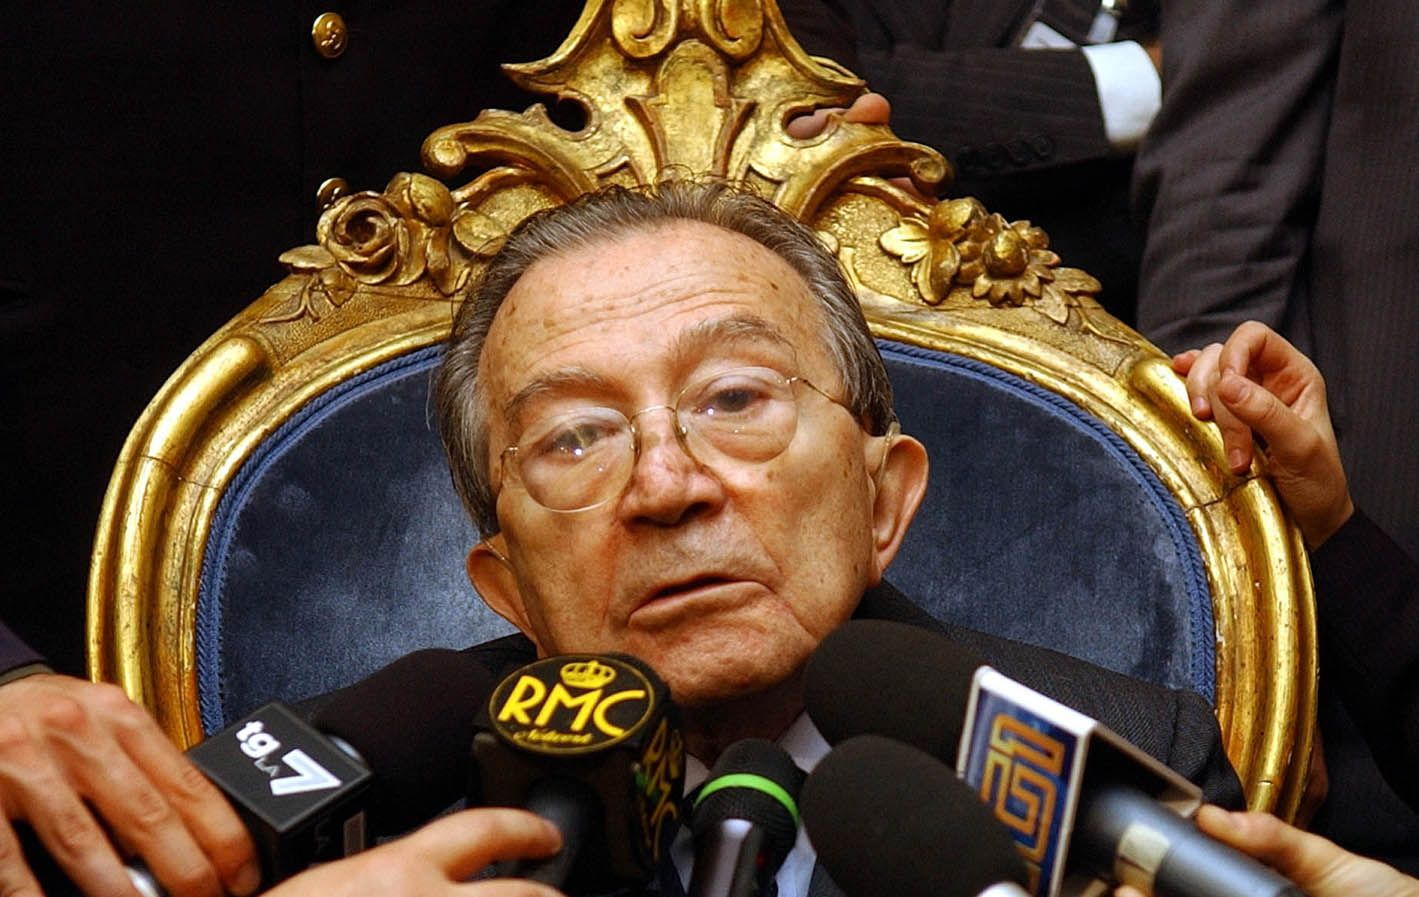 Eterno. Andreotti